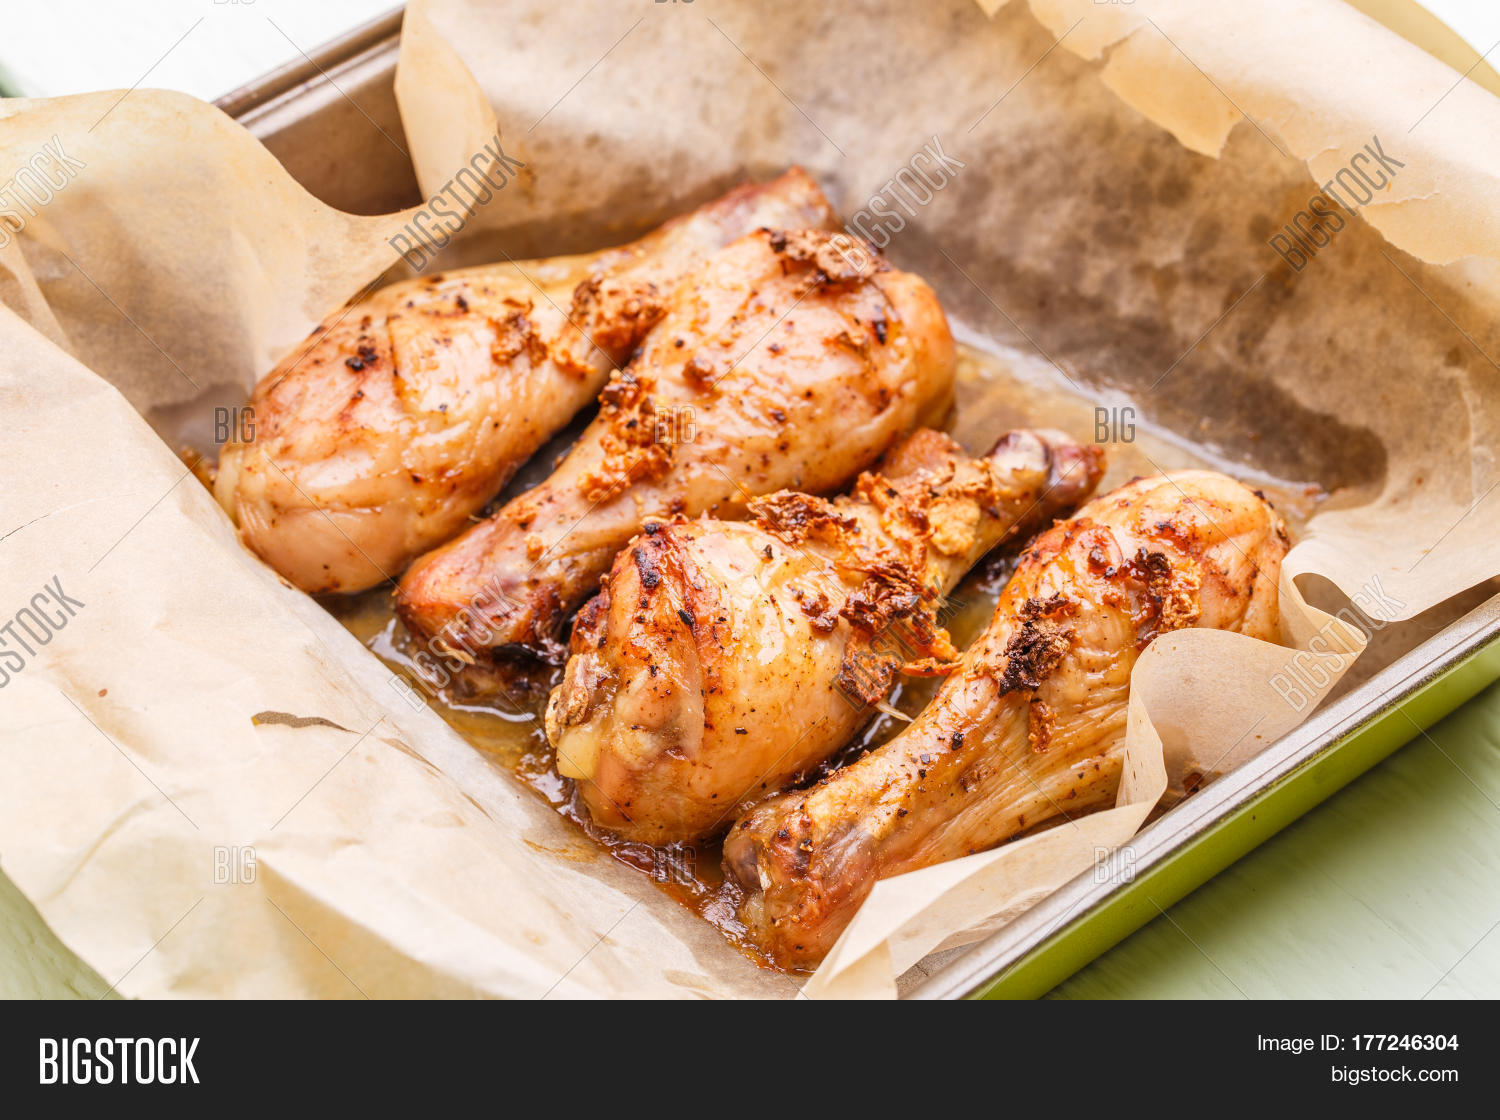 Fried chicken on cooking paper image photo bigstock for Table 52 fried chicken recipe